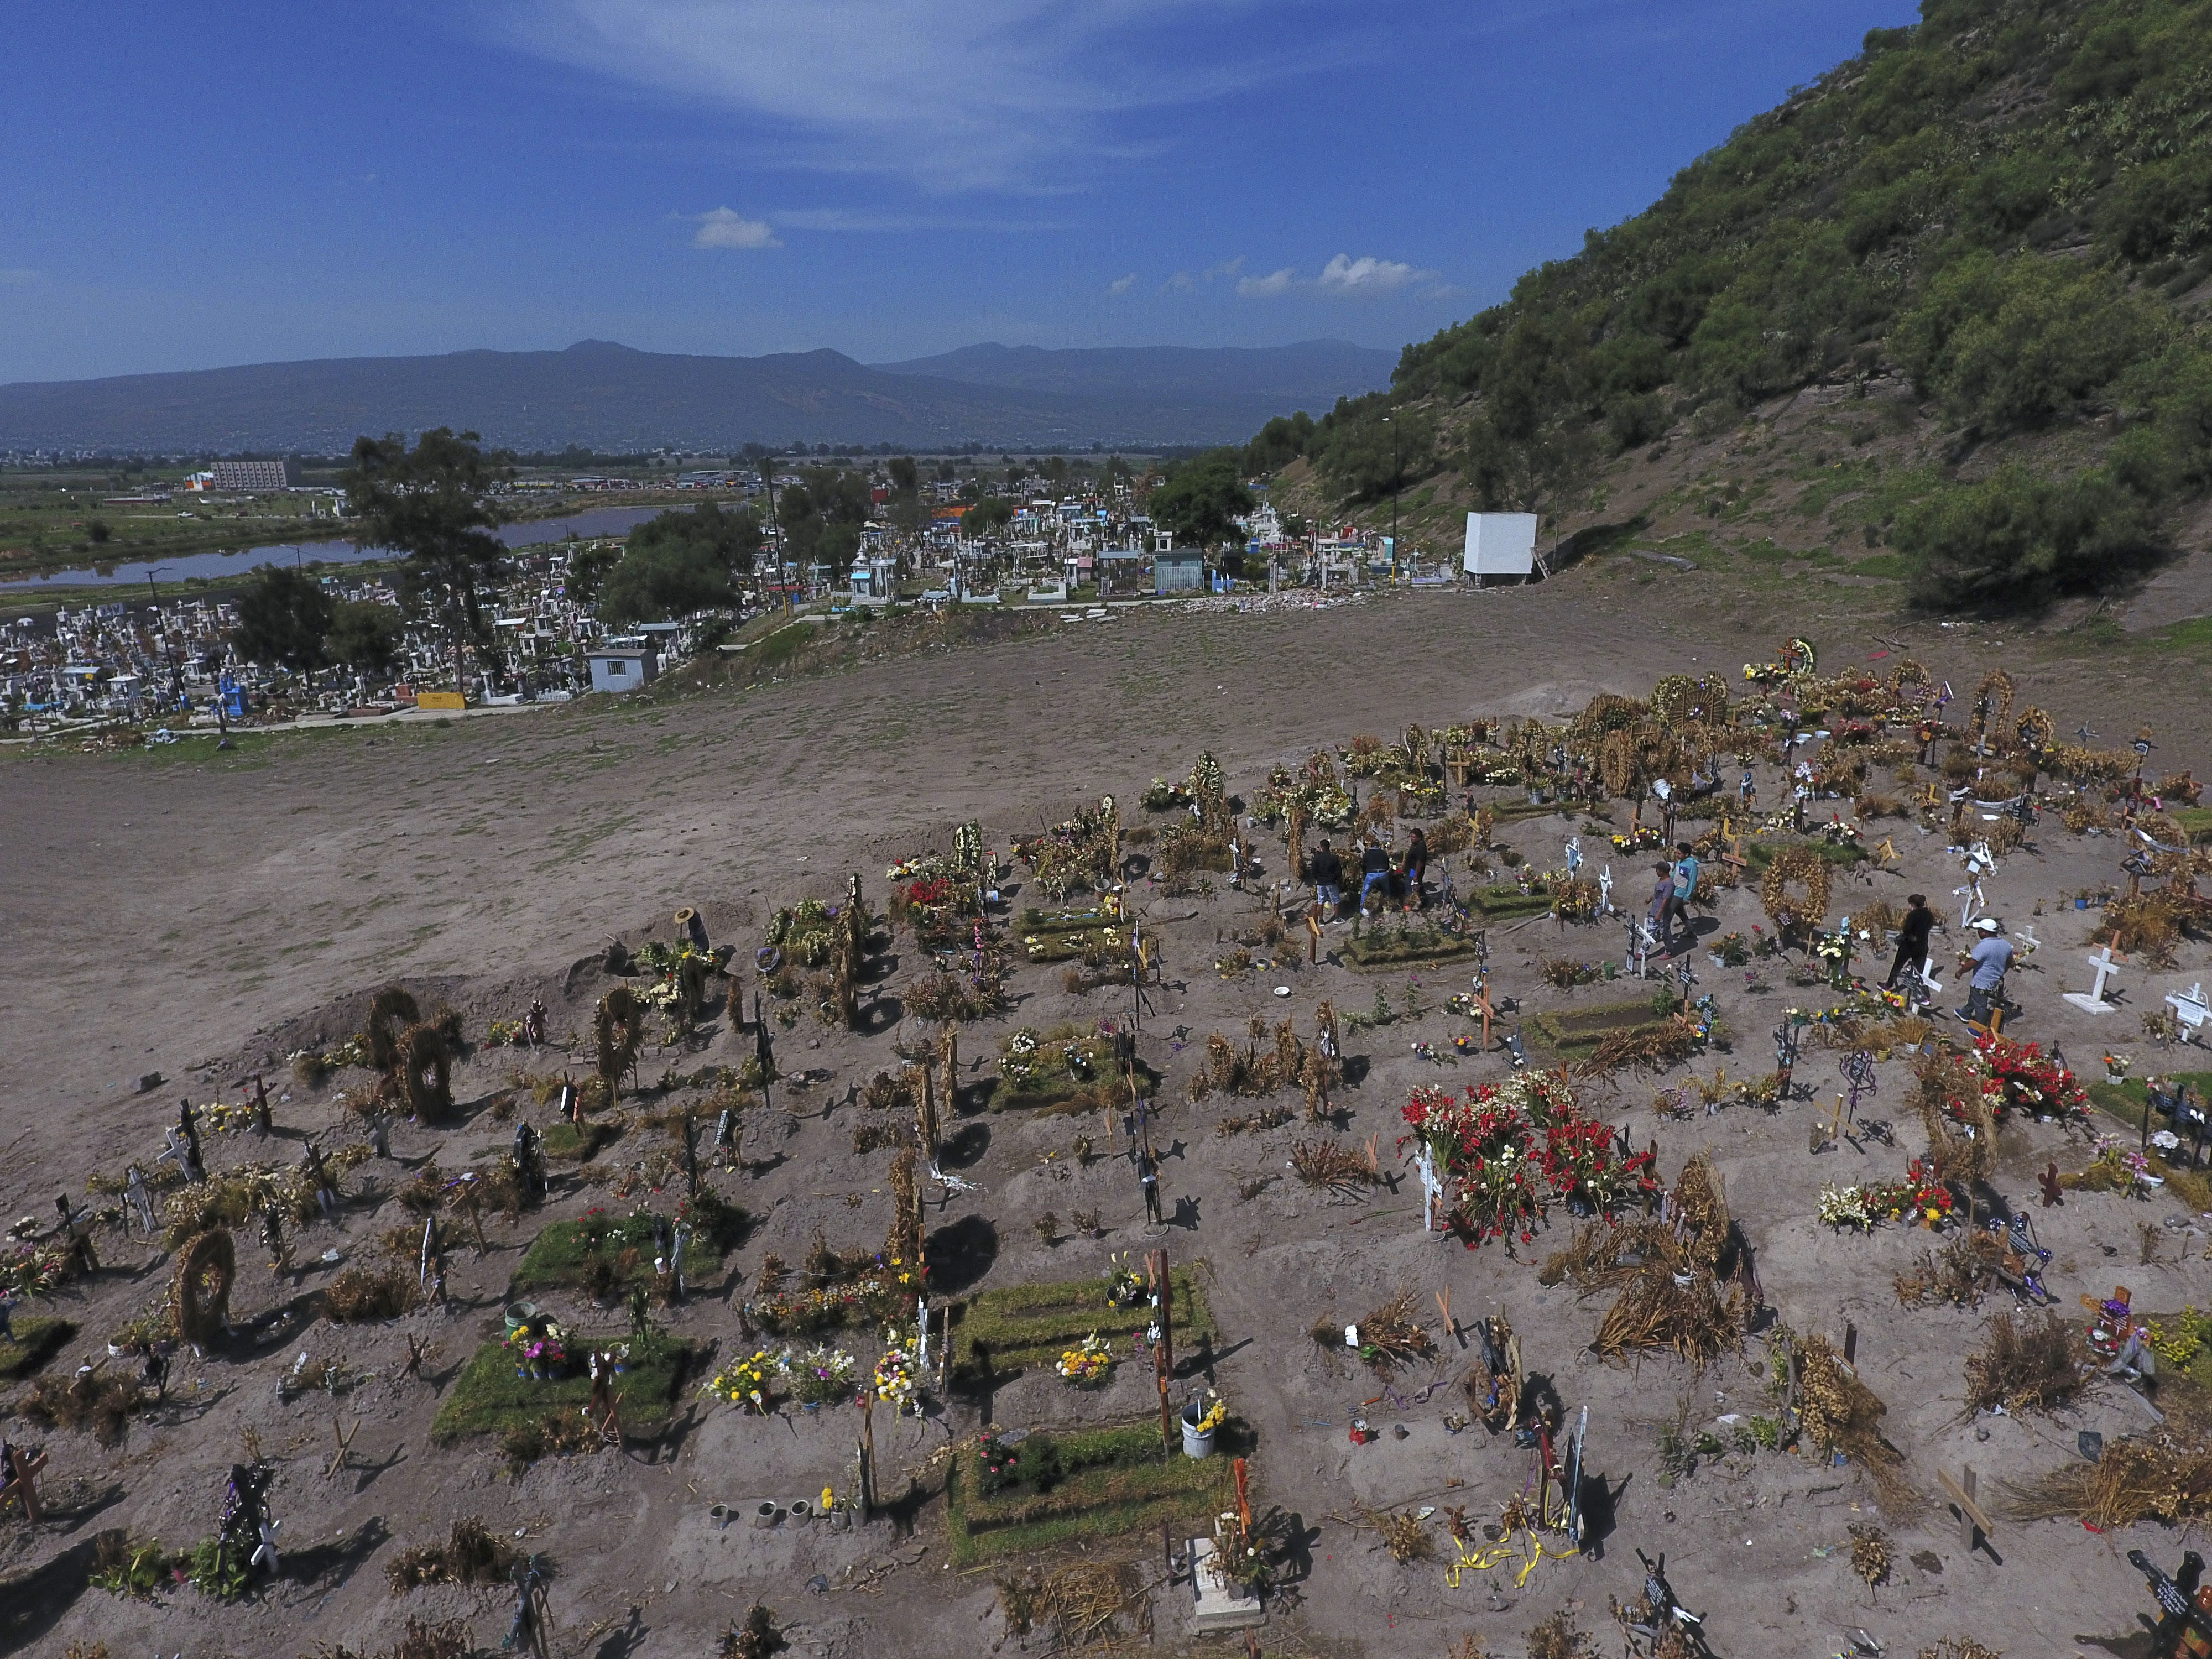 Crosses and wreaths mark graves in a section of the Municipal Cemetery of Valle de Chalco opened two months ago to accommodate the surge in deaths amid the ongoing coronavirus pandemic, on the outskirts of Mexico City, Thursday, July 2, 2020. (AP Photo/Rebecca Blackwell)